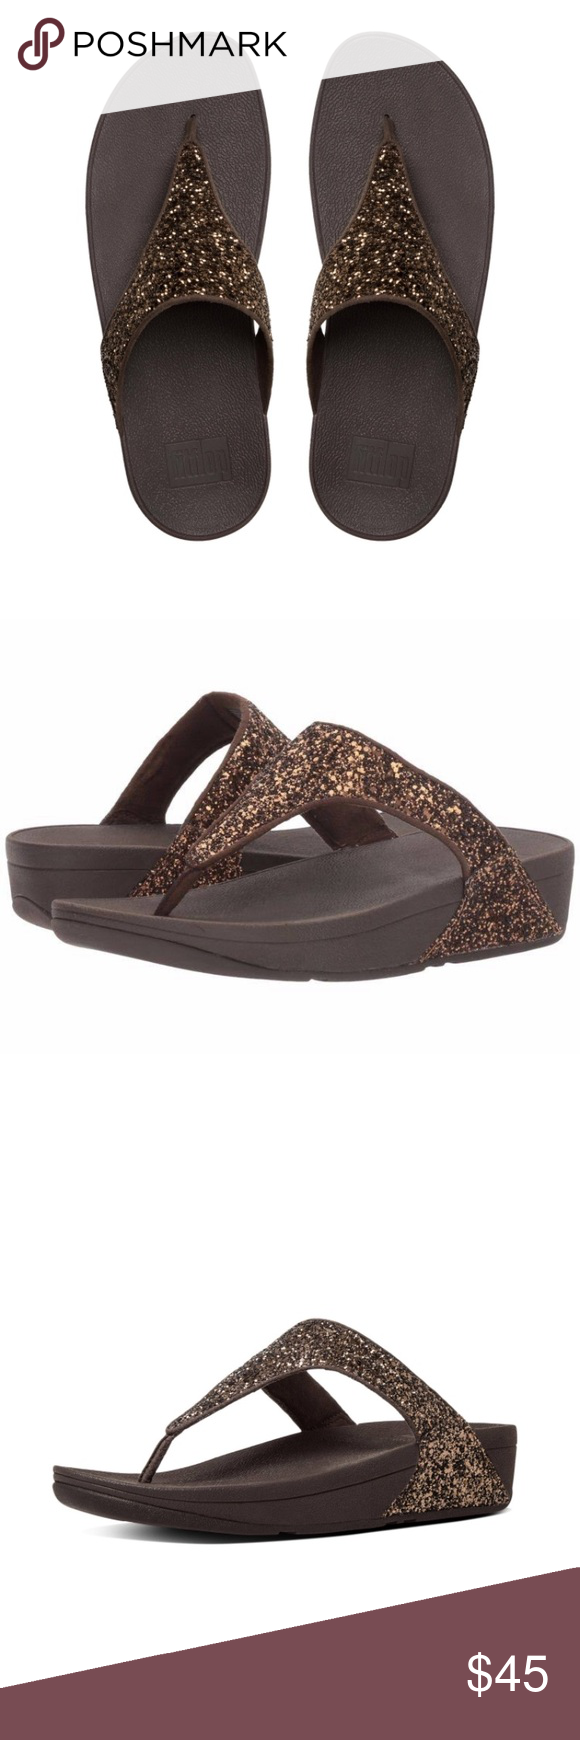 822b151f87ffb0  Fitflop Glitterball Toe-Post Sandals In Bronze 6 Sparkle and shine in  these bold Glitterball Toe Post sandals by Fitflop! Traction and  durability